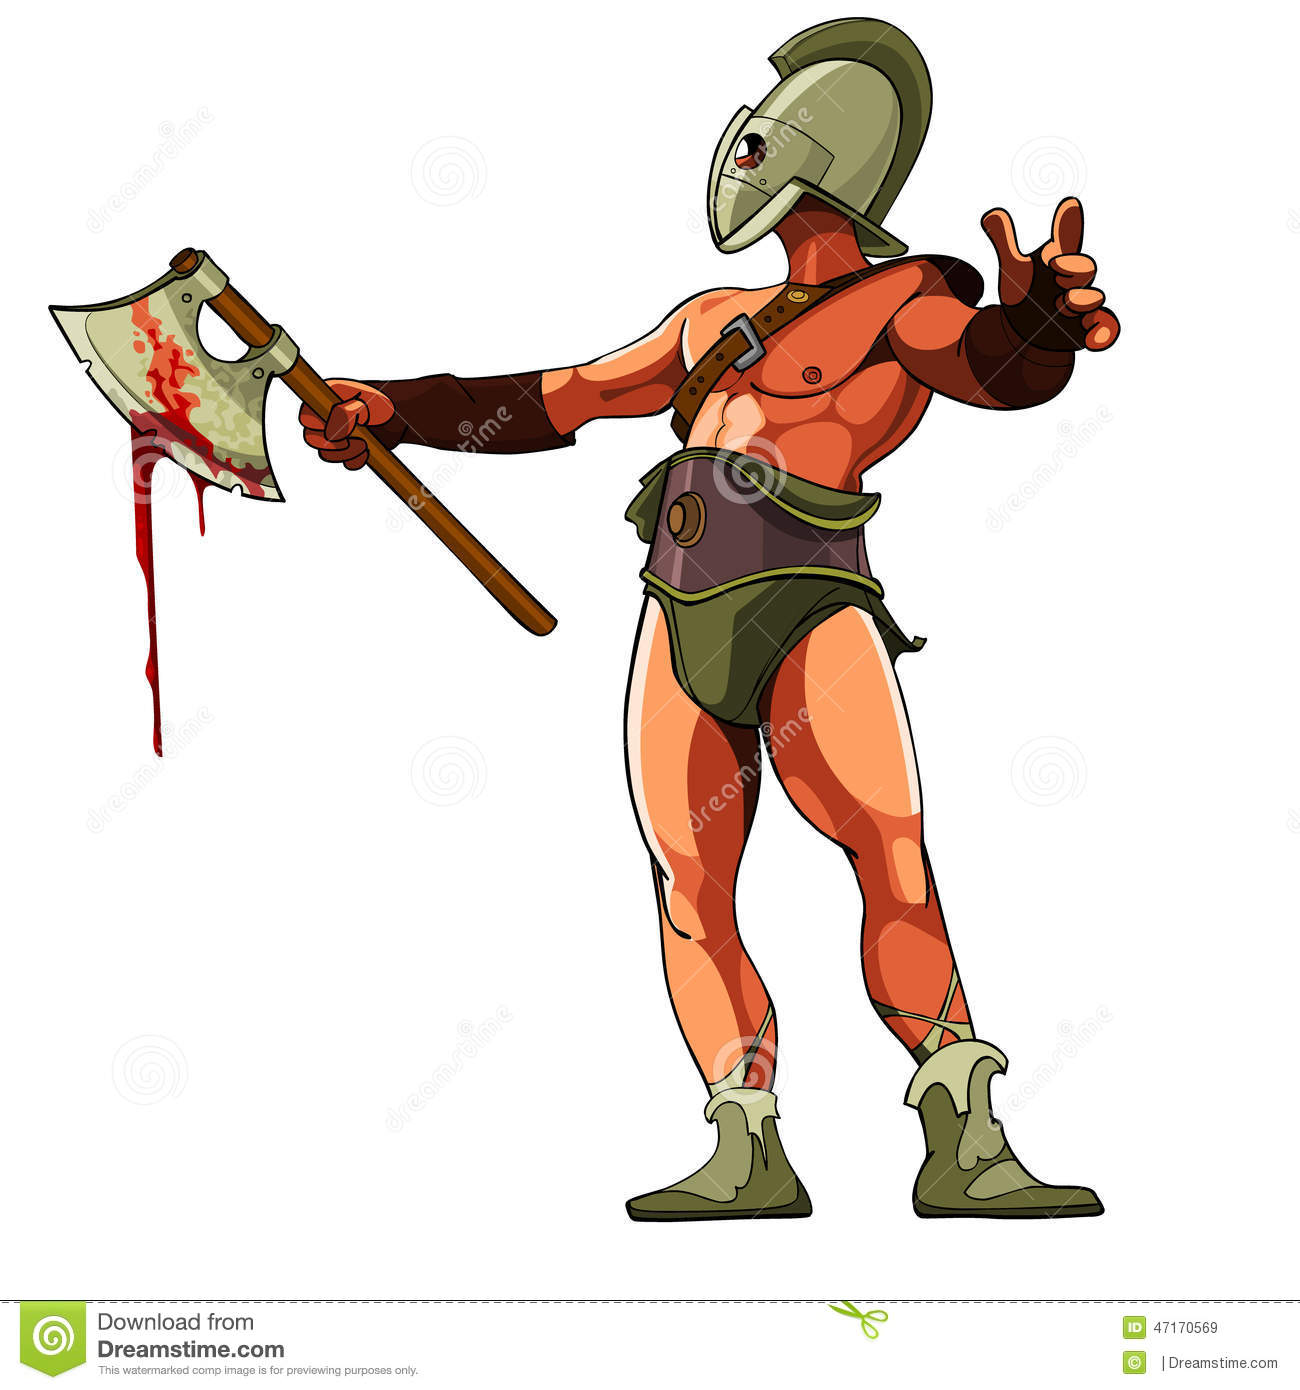 Gladiator with a bloody ax